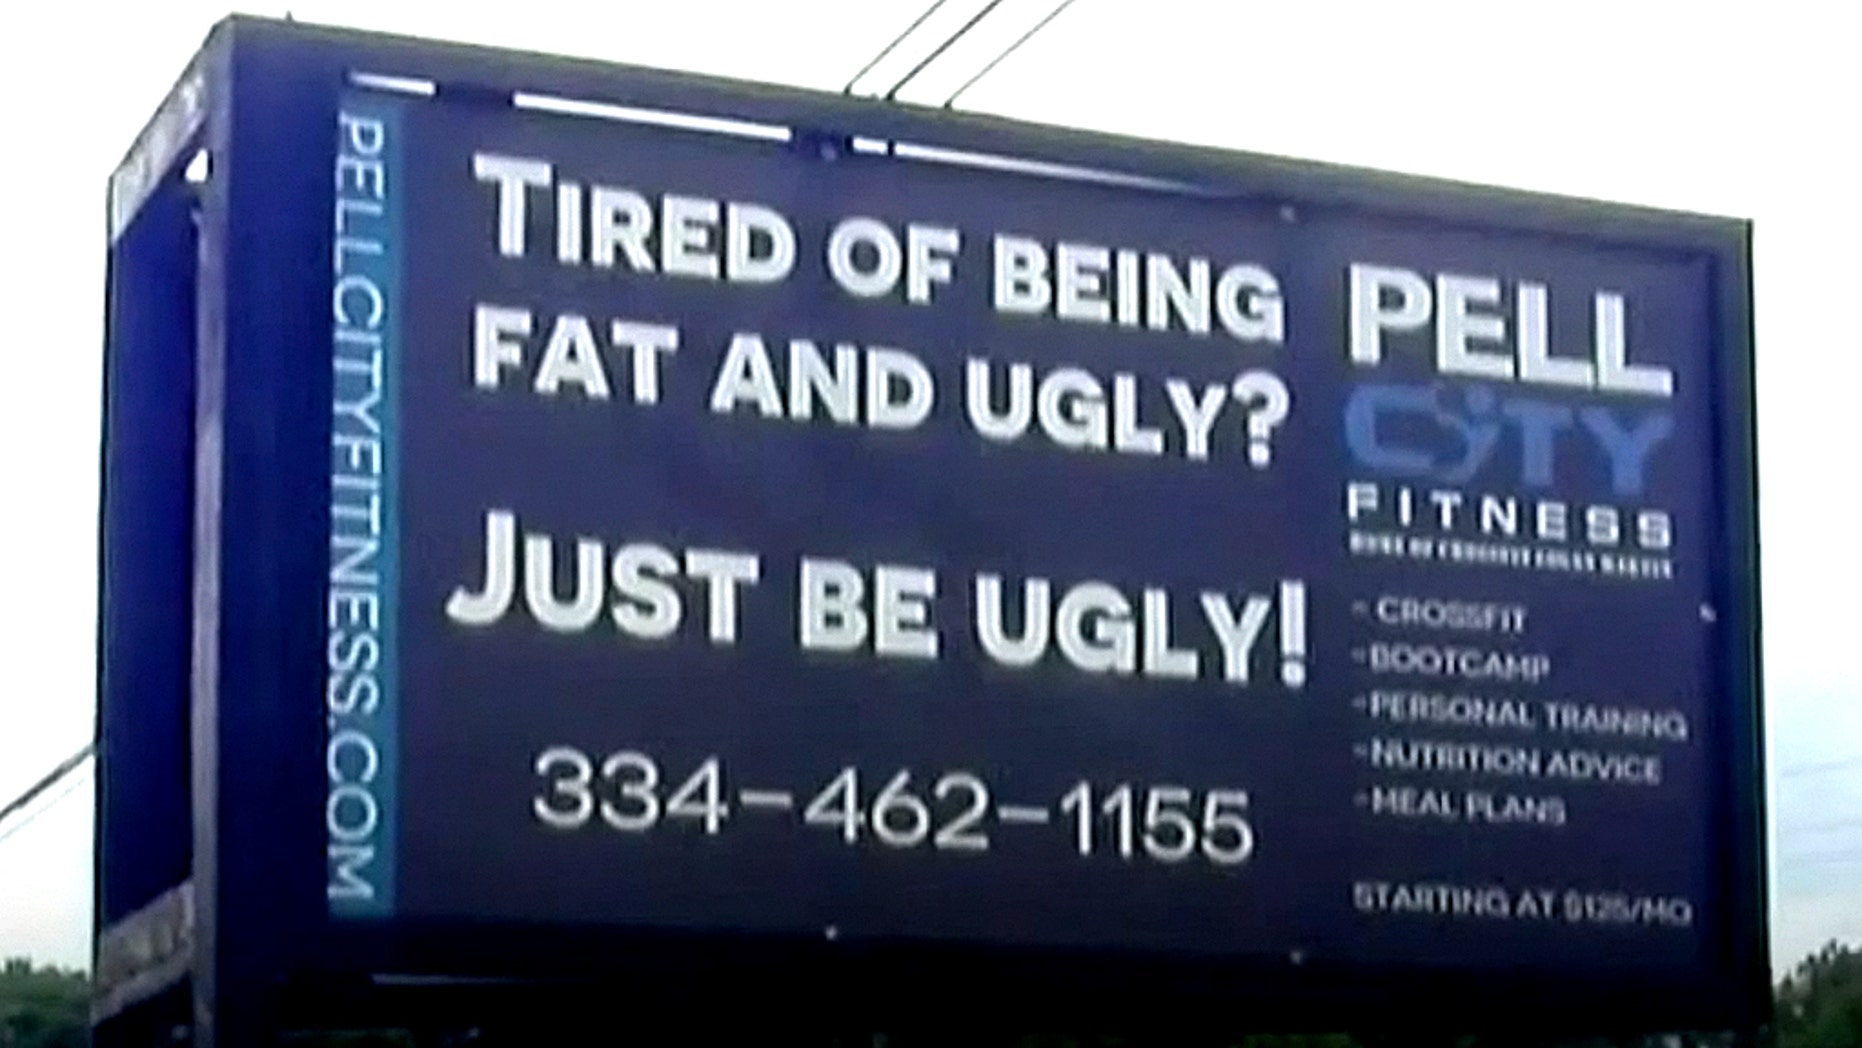 A gym owner's sign has caused some controversy in a small Alabama city.